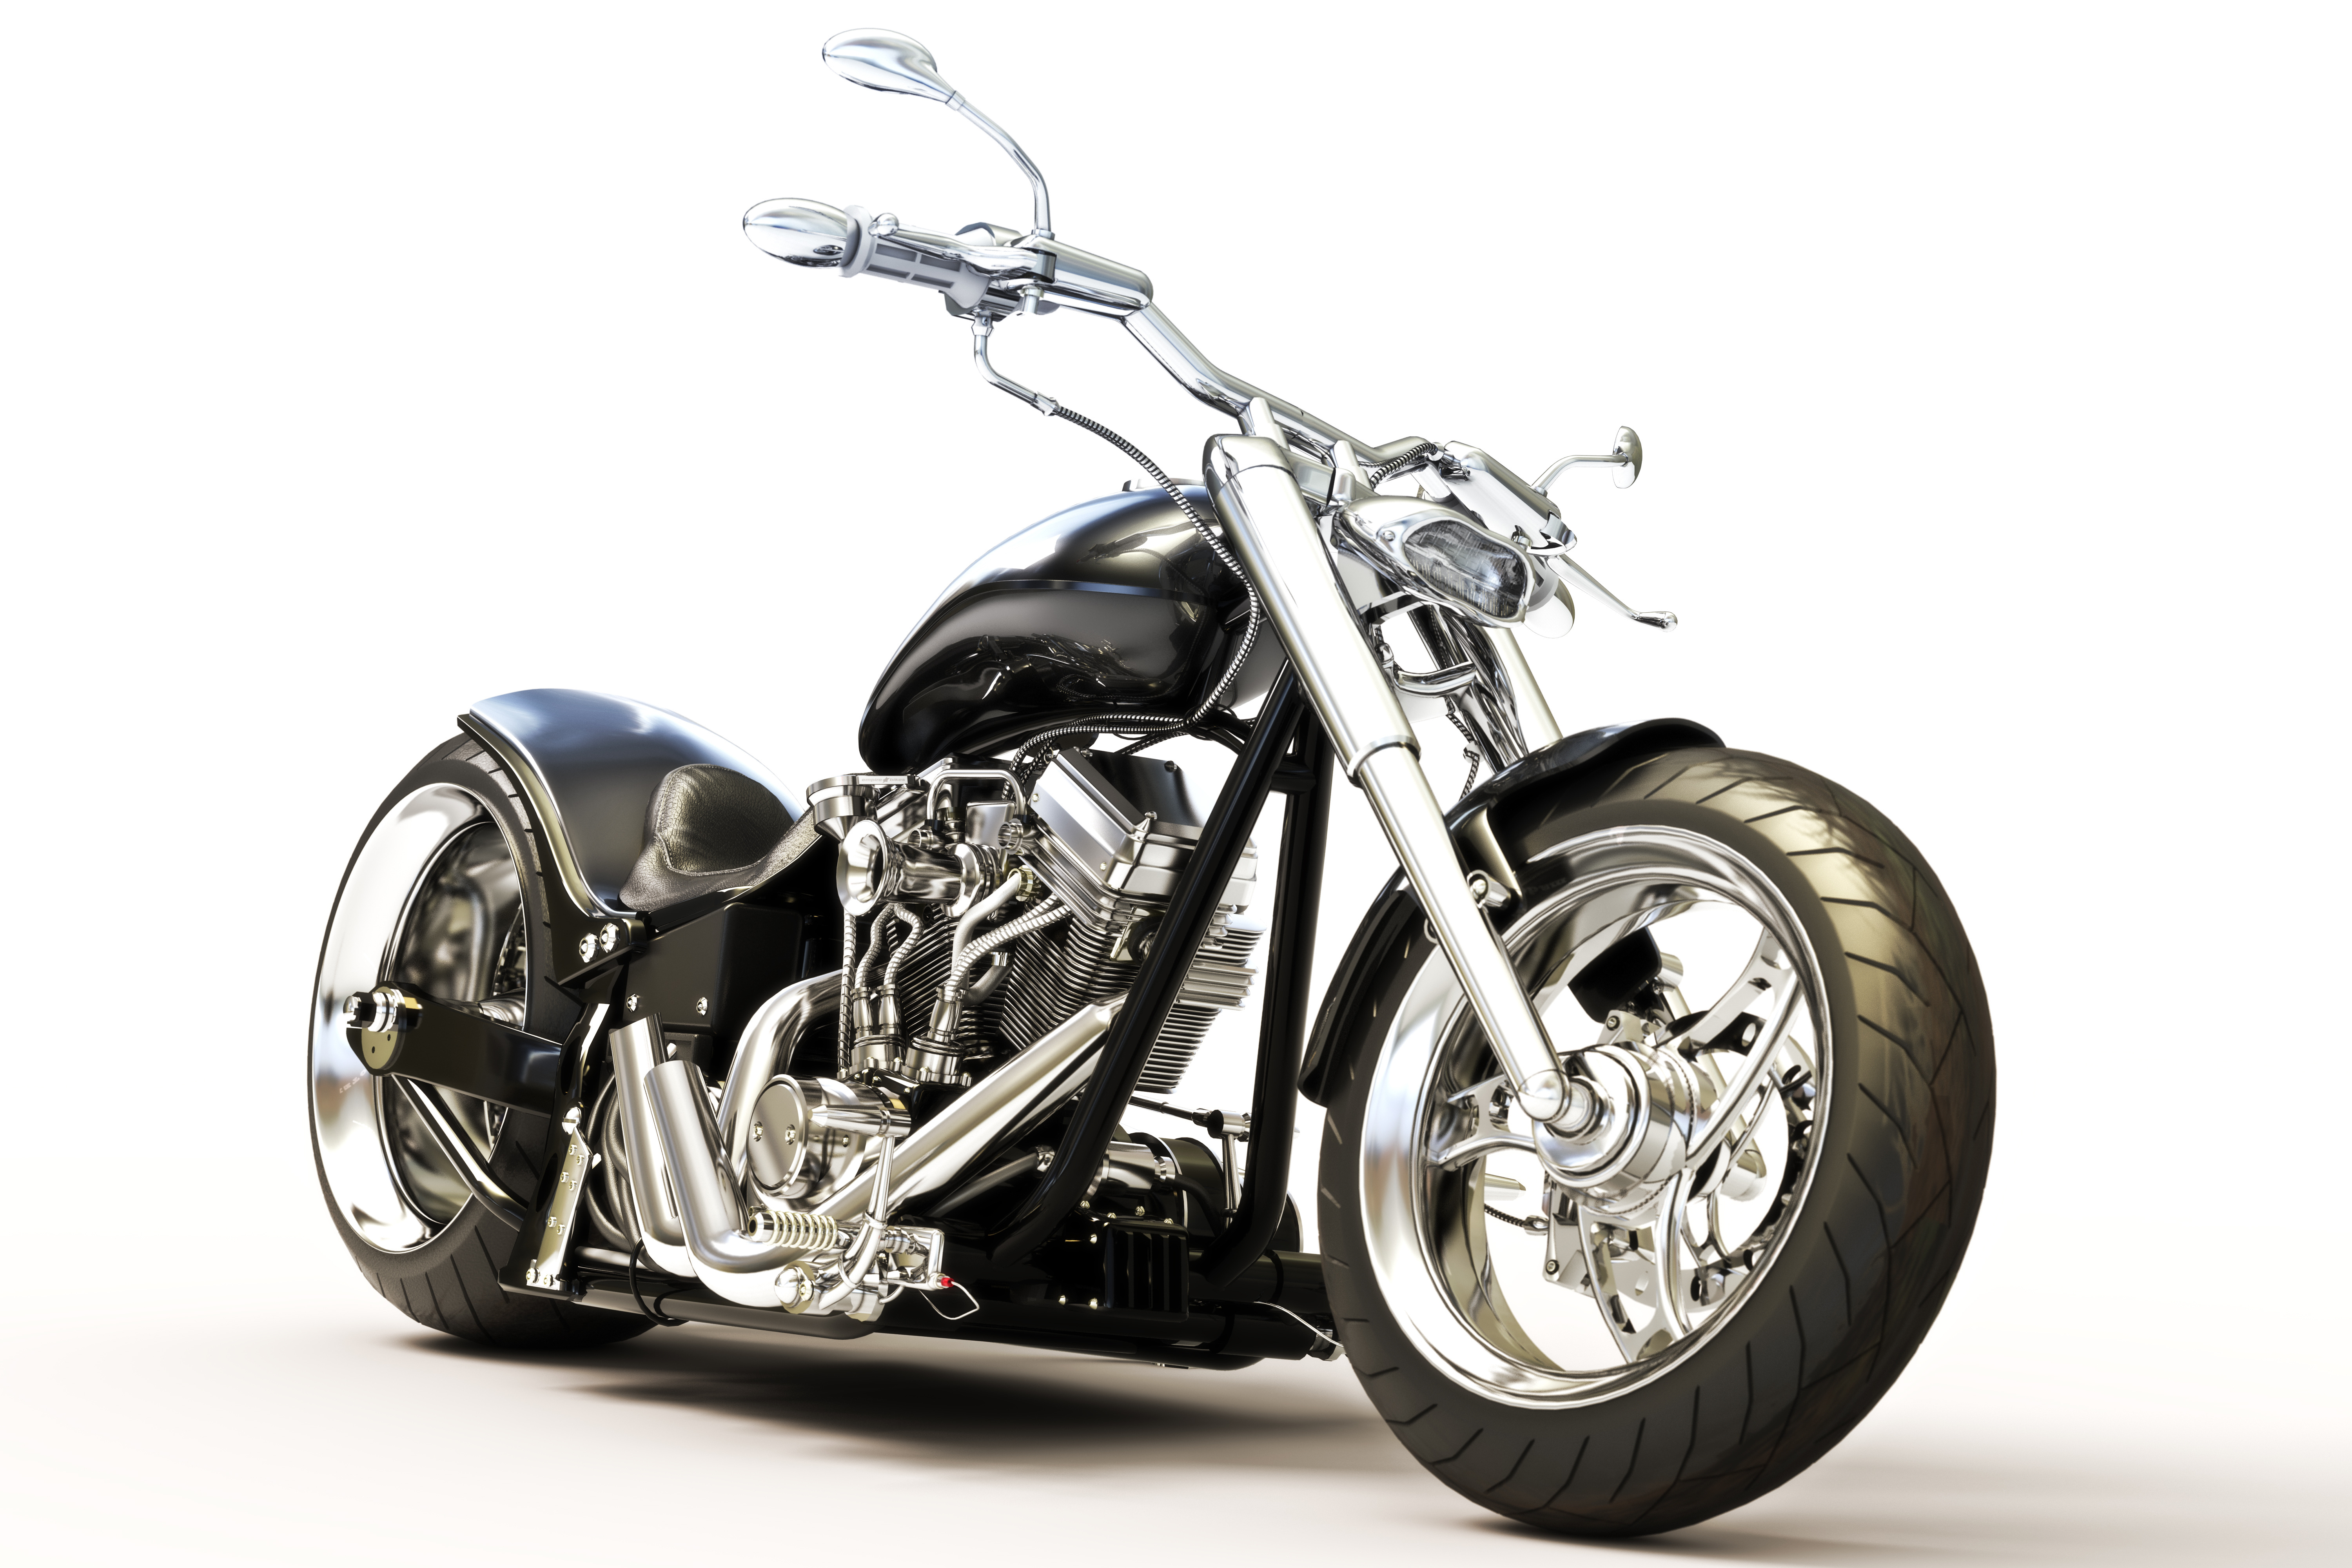 Some Areas Of The Country Do Not Have A Climate Suitable For Riding Motorcycle Year Round Even Most Dedicated Bikers